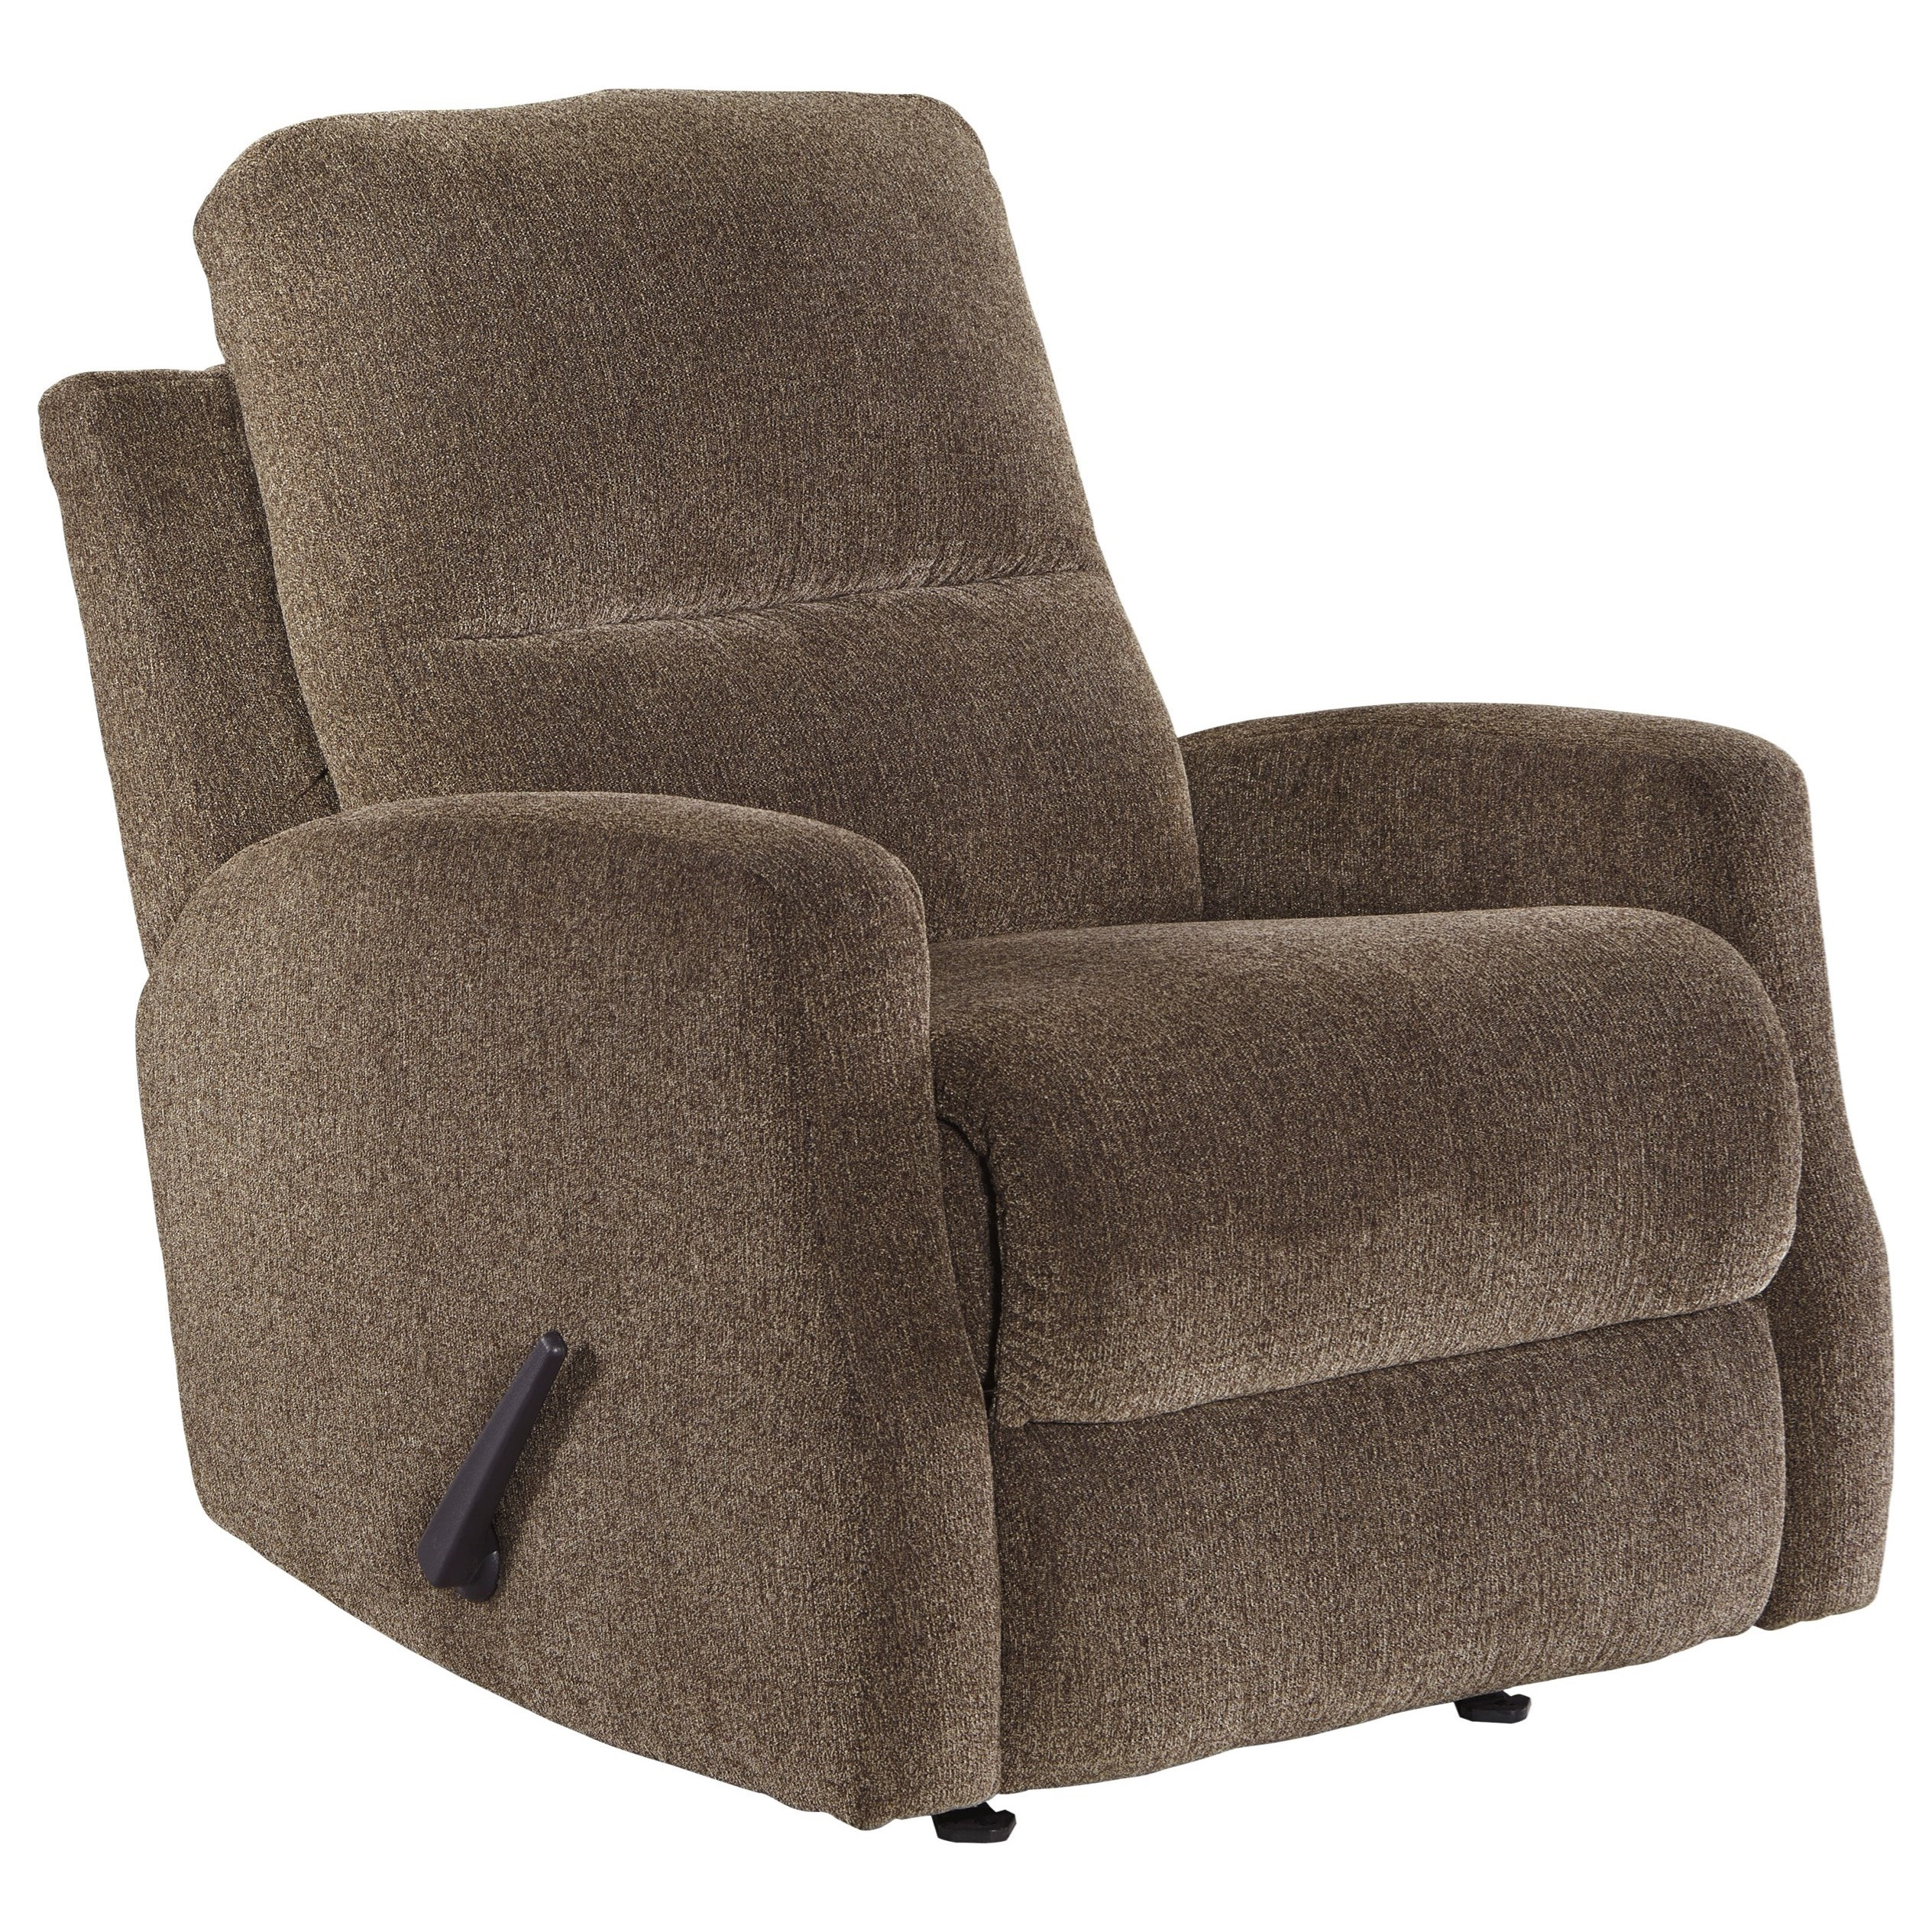 Signature Design by Ashley Fambro Rocker Recliner - Item Number: 6370525